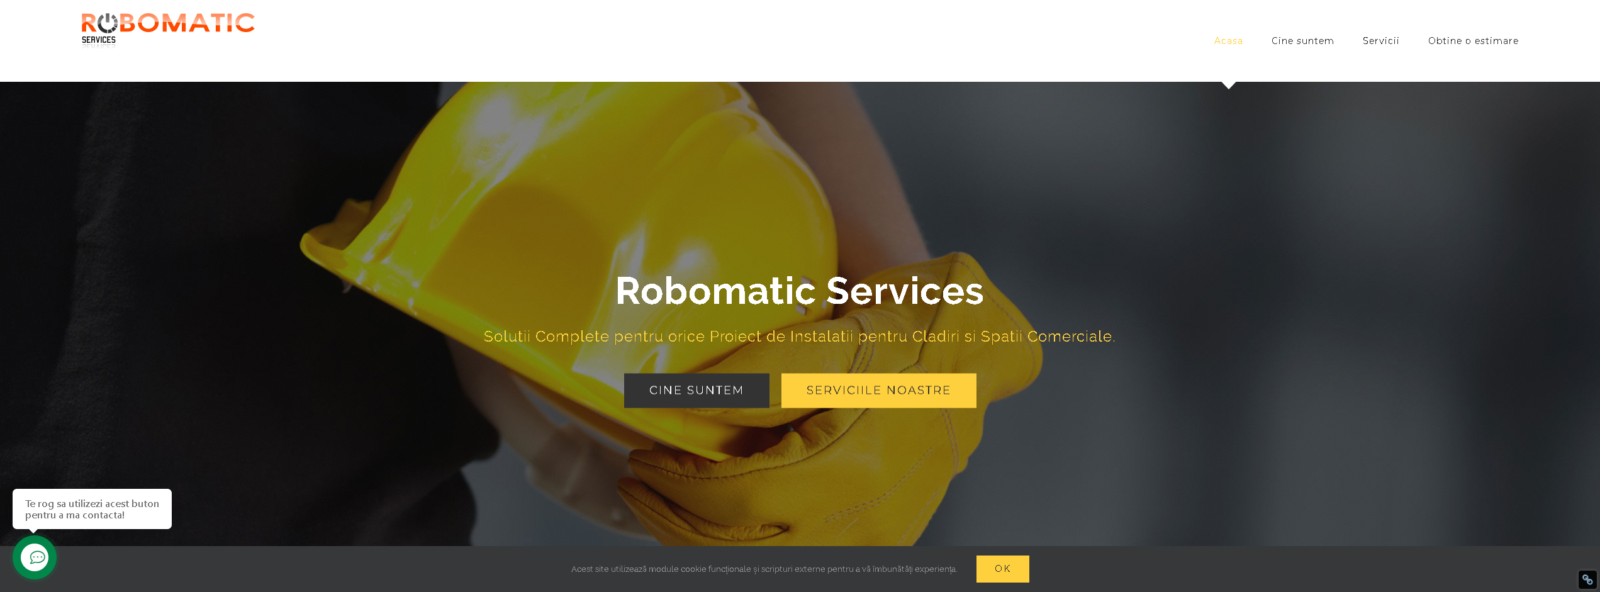 Robomatic Services